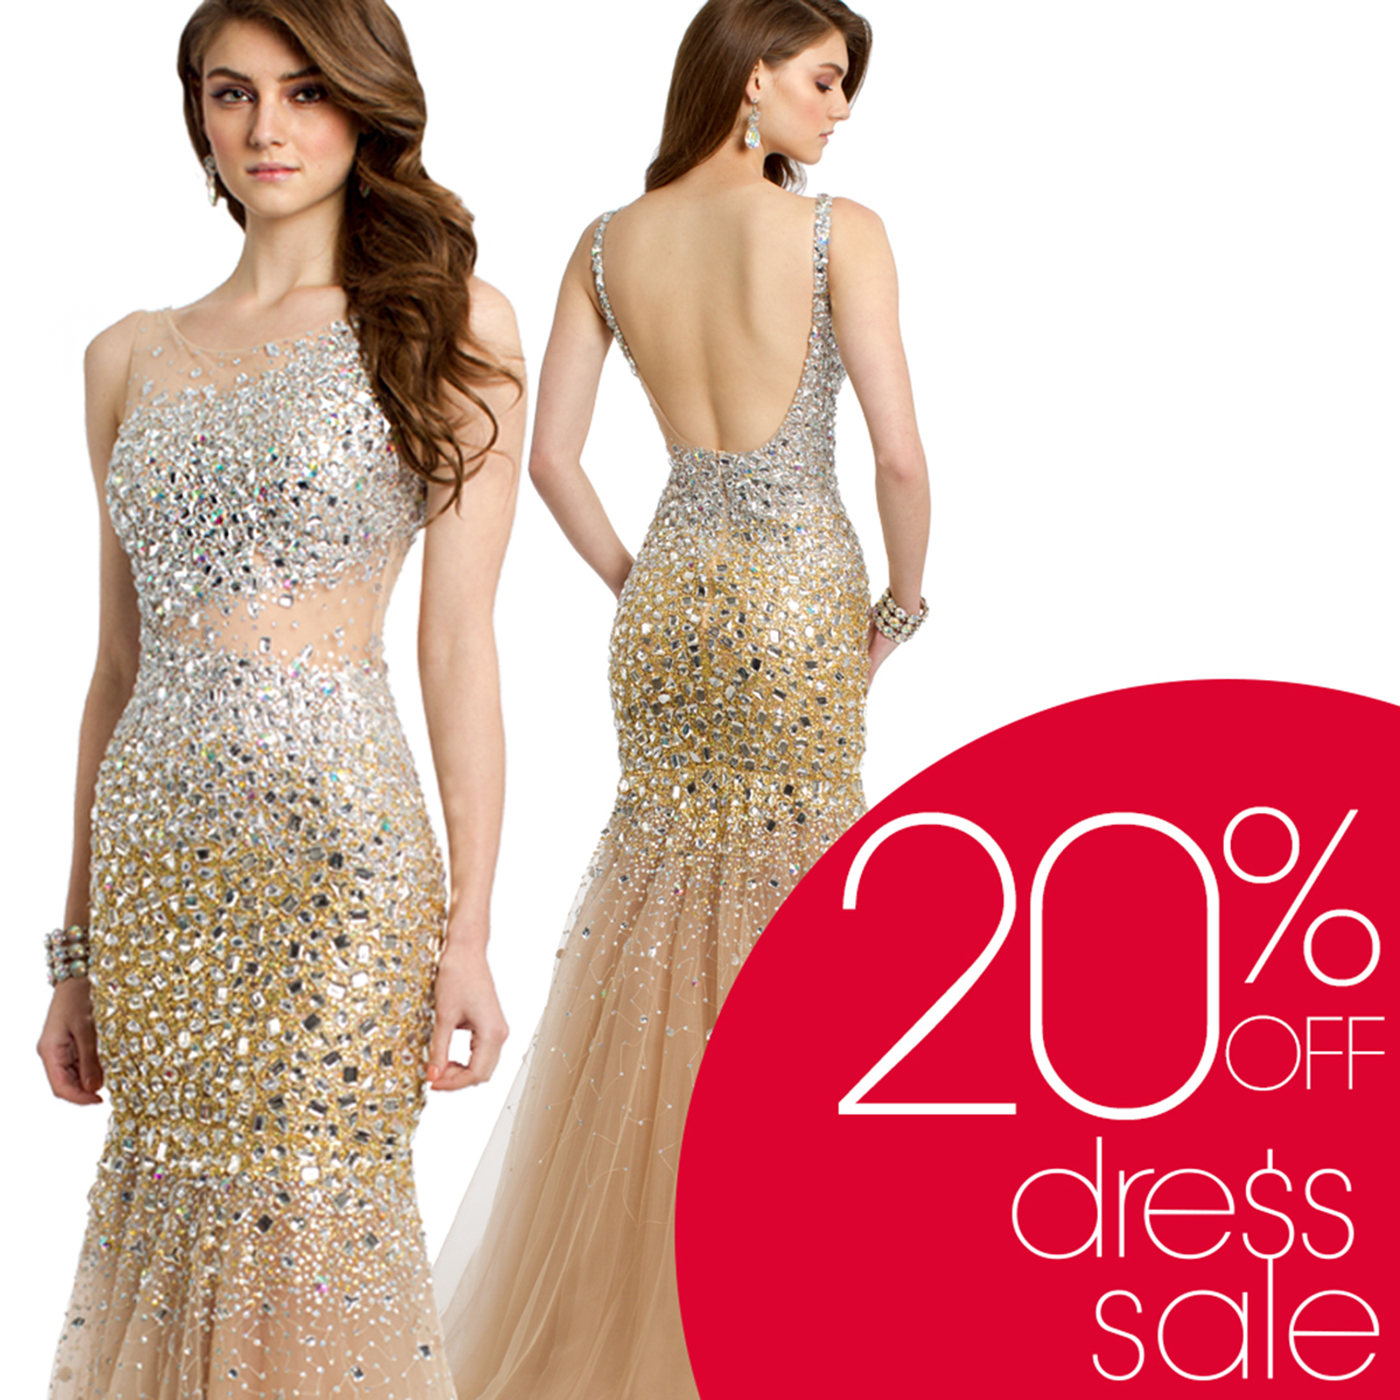 Prom Dress Prices